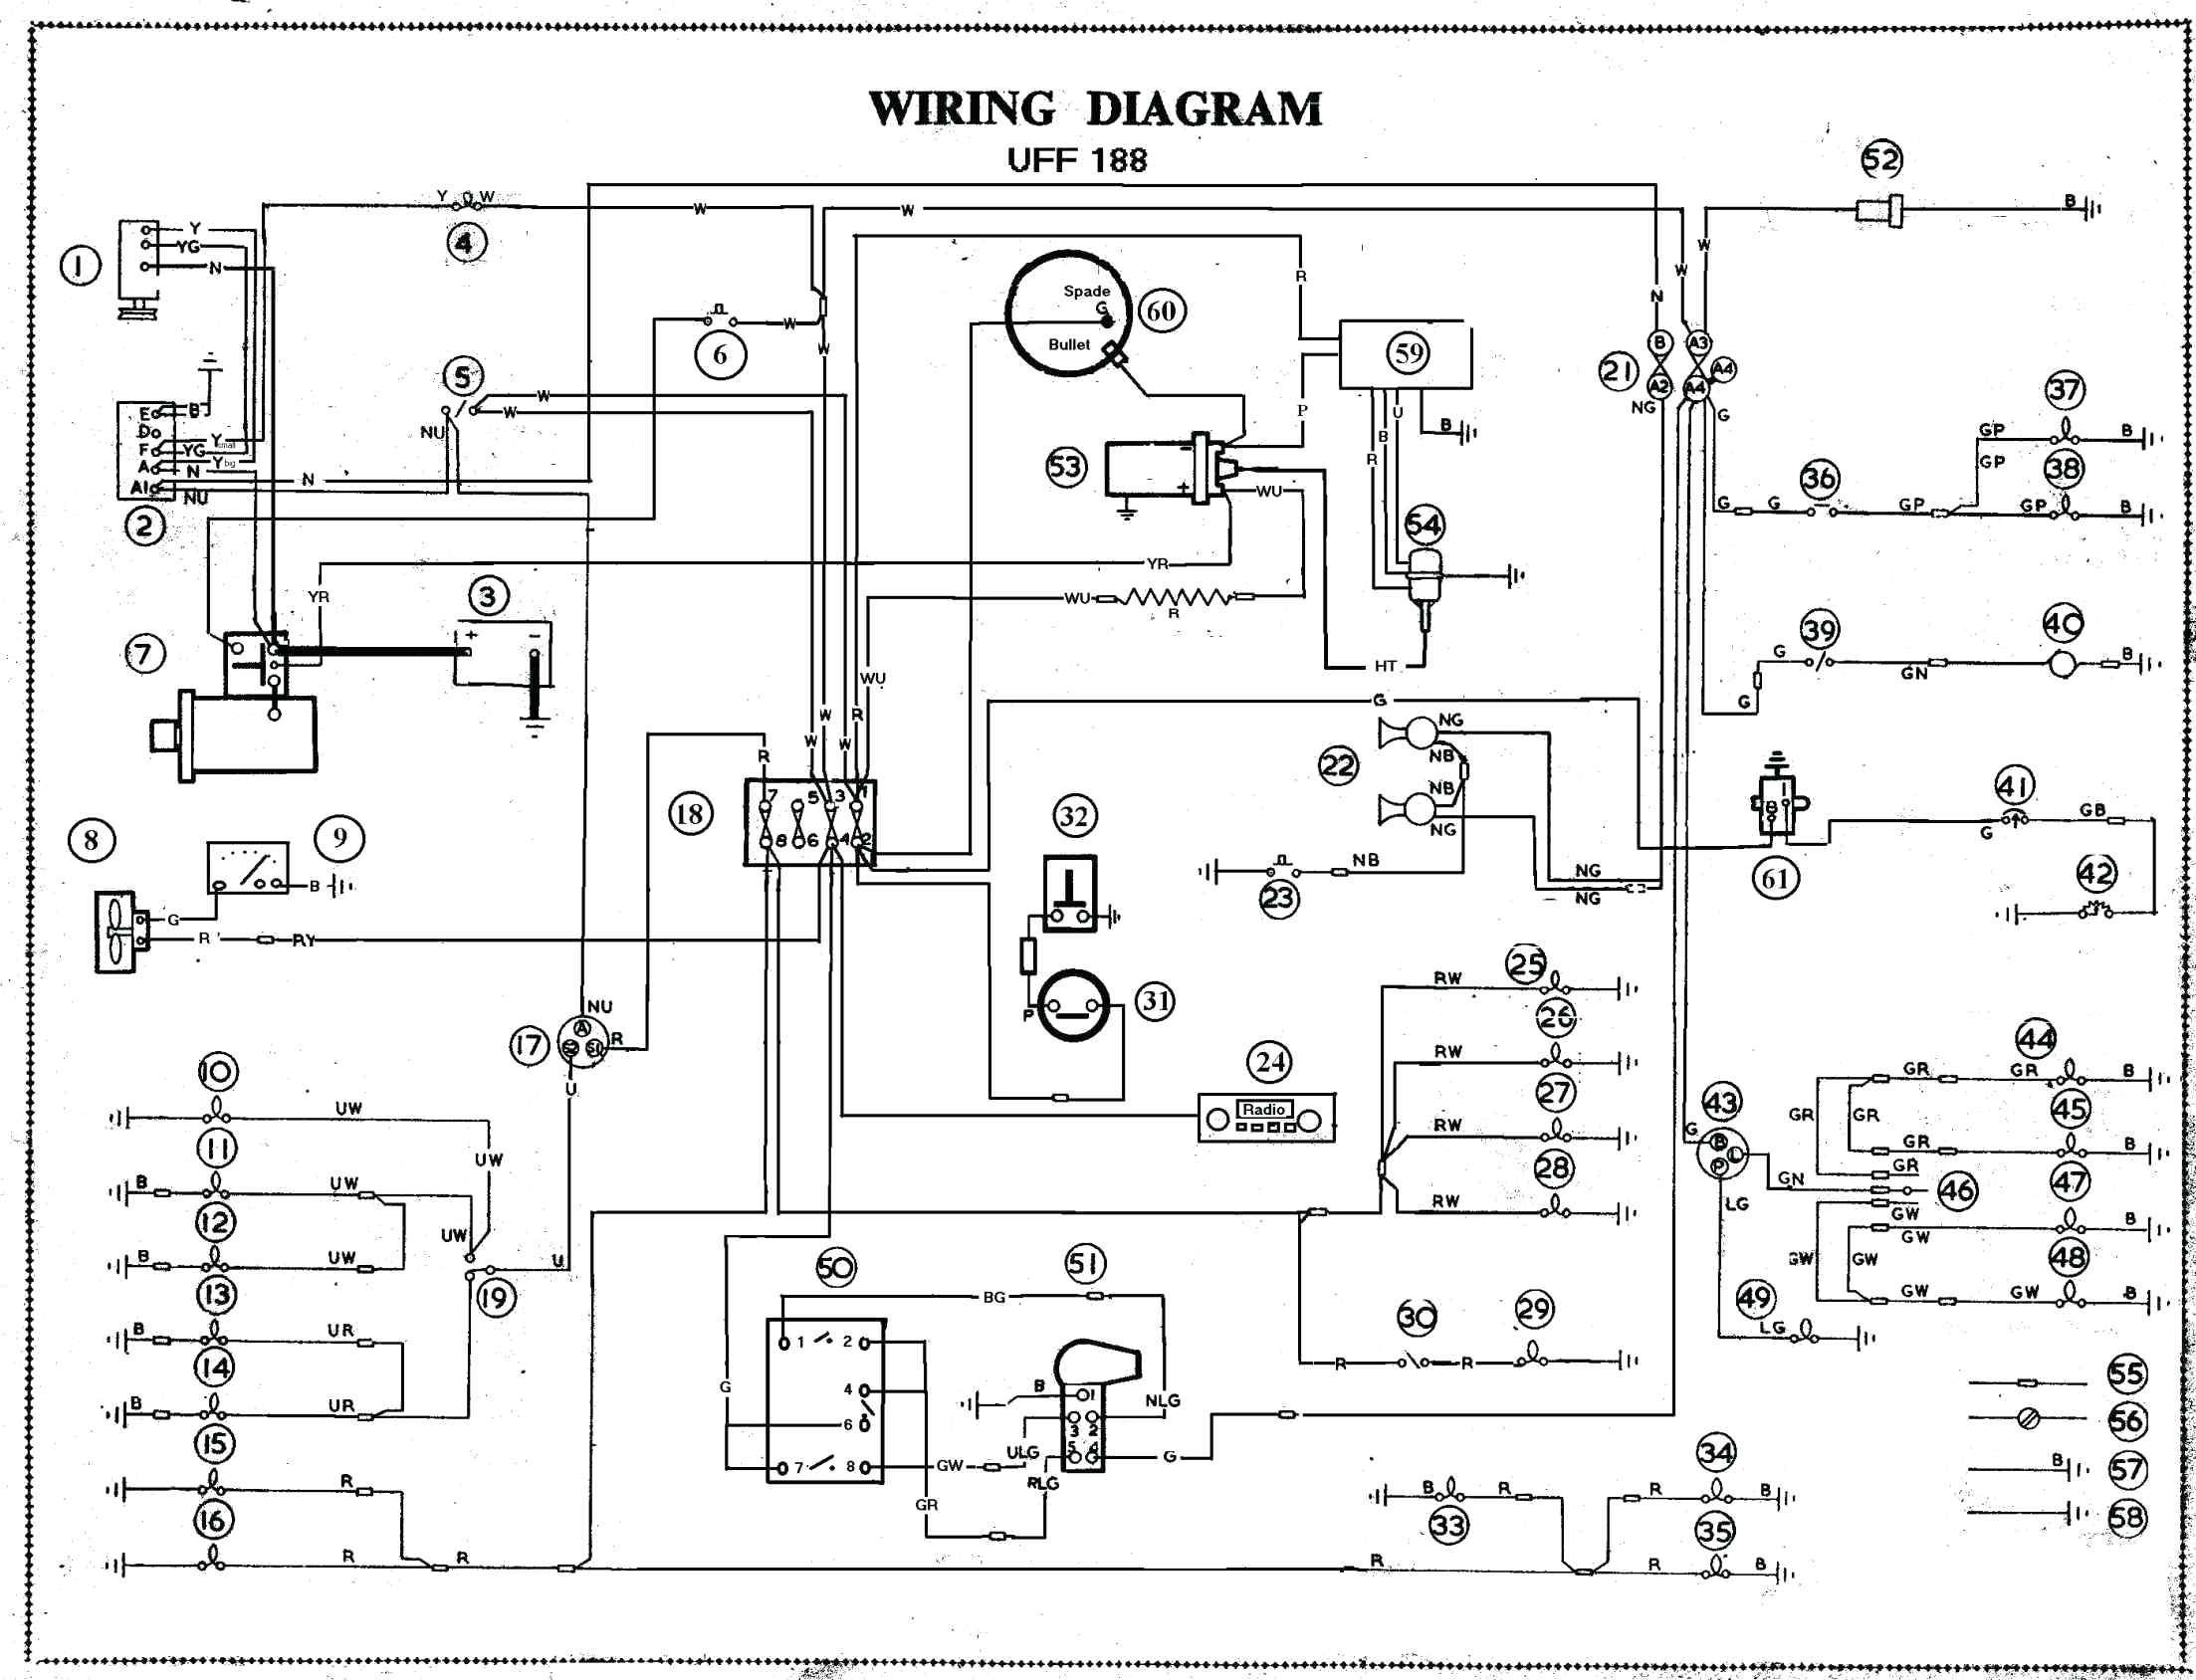 Aircraft Wiring Diagram Software